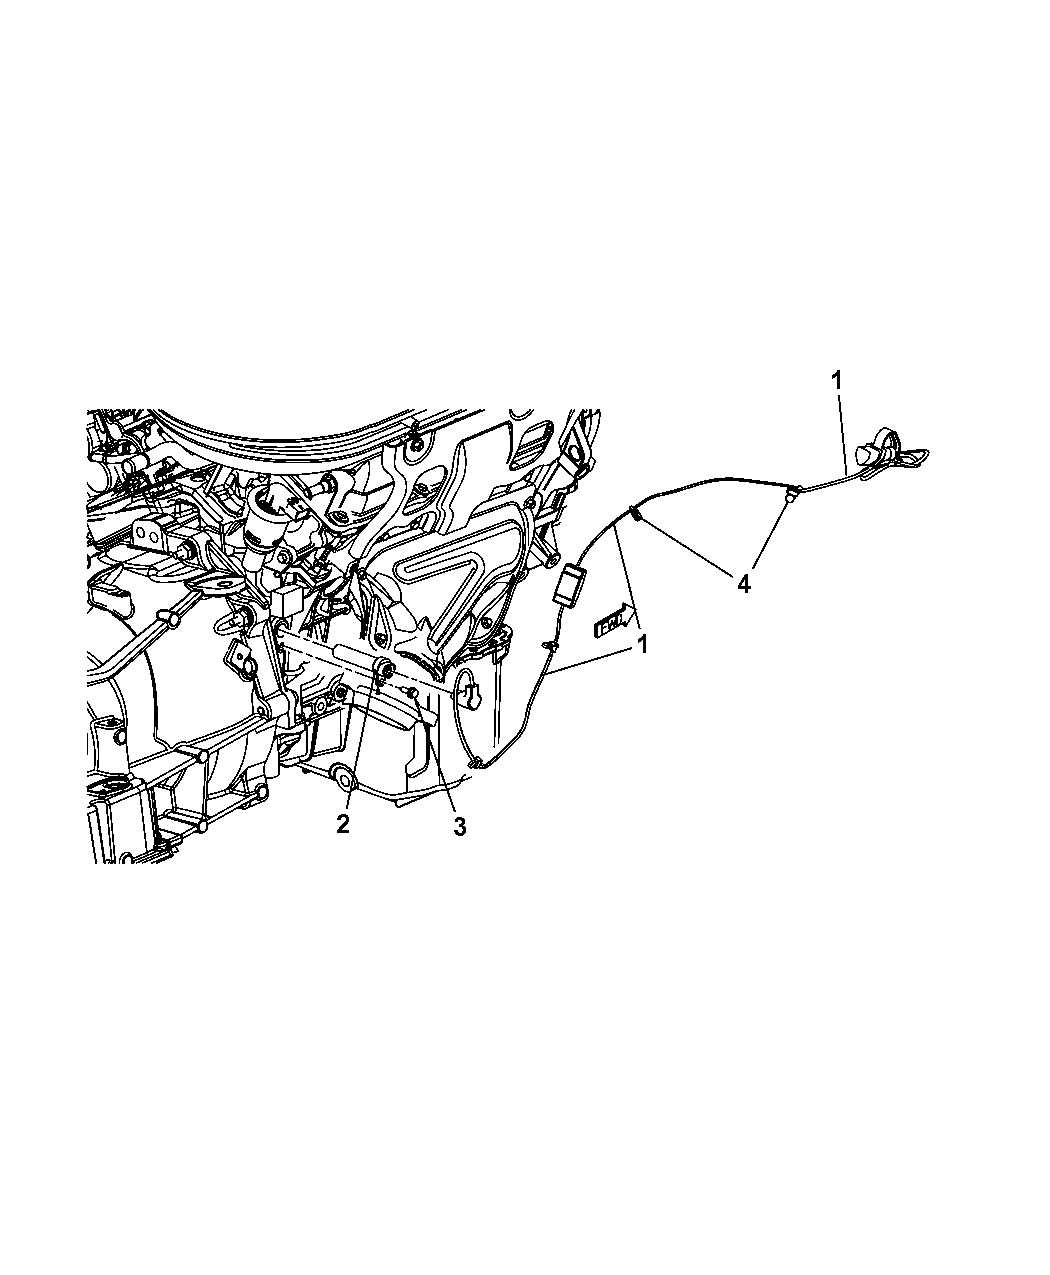 2012 chrysler town & country engine cylinder block heater  2012 chrysler town and country engine diagram #45